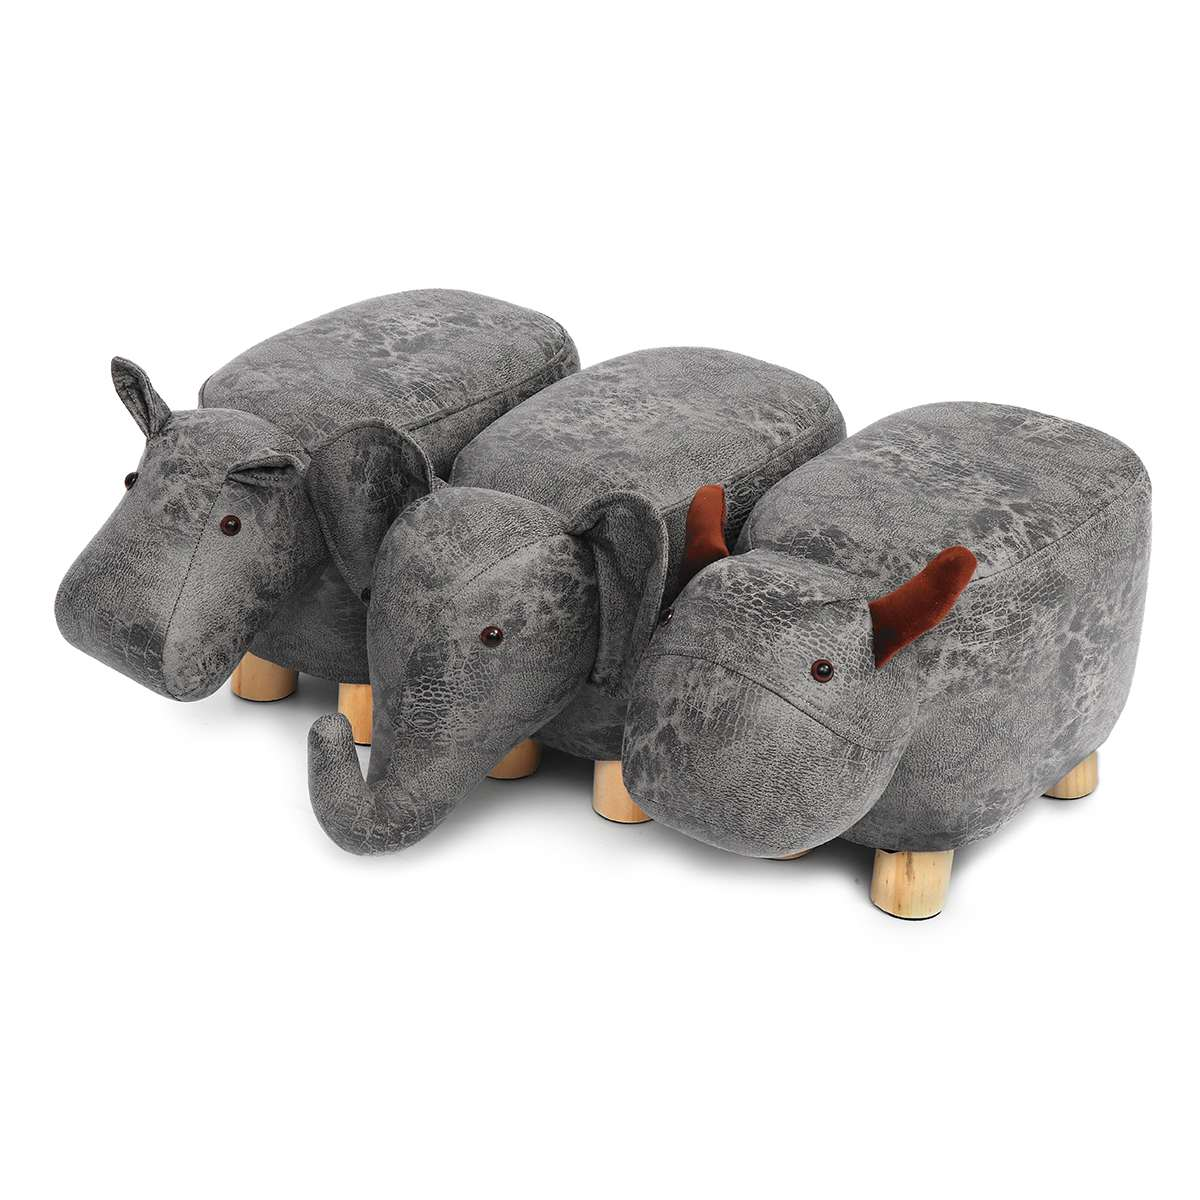 50x28x24cm Animal Shape Footstools Ottomans Shoes Sofa Padded Cushion Pouffe Stools Rest Seat Home Kids Bedroom Furniture Decor